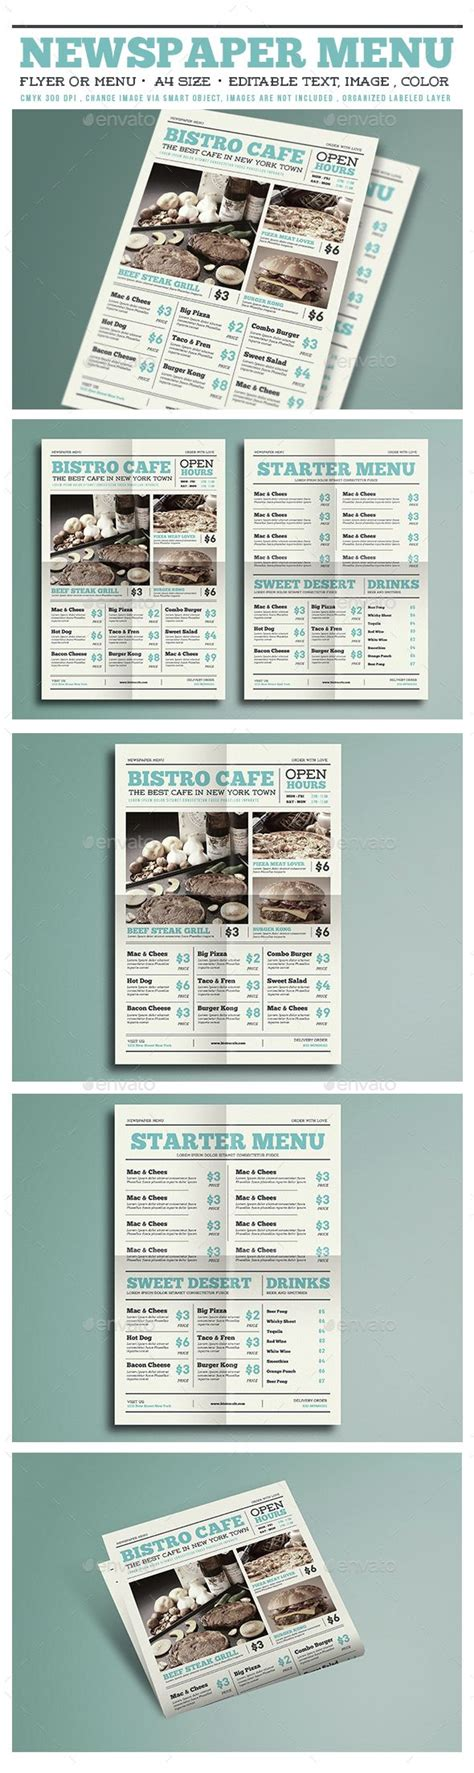 Newspaper Menu Flyer Psd Template Only Available Here Http Graphicriver Net Item Newspaper Newspaper Style Menu Template